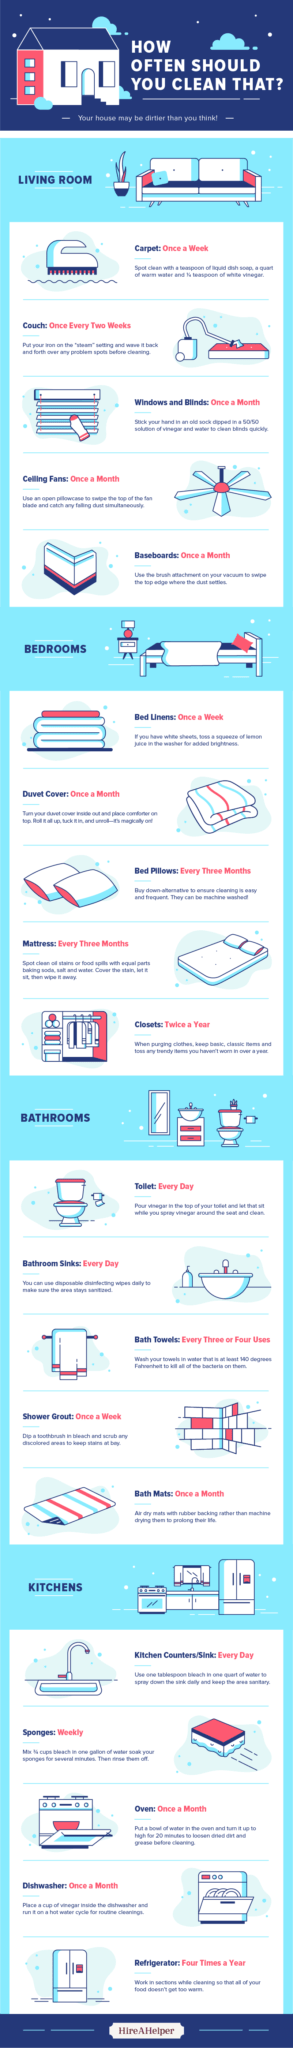 How often should you clean your house infographic on top 20 items that need to be cleaned in a home.